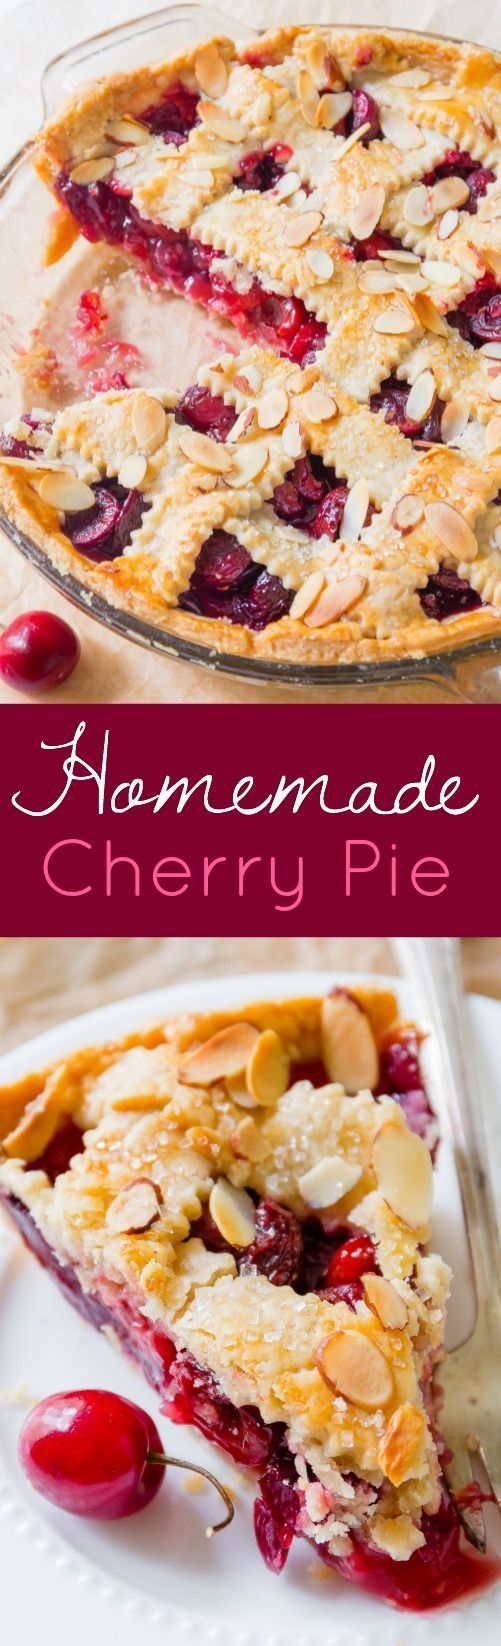 best my favorite food recipes images on pinterest desserts